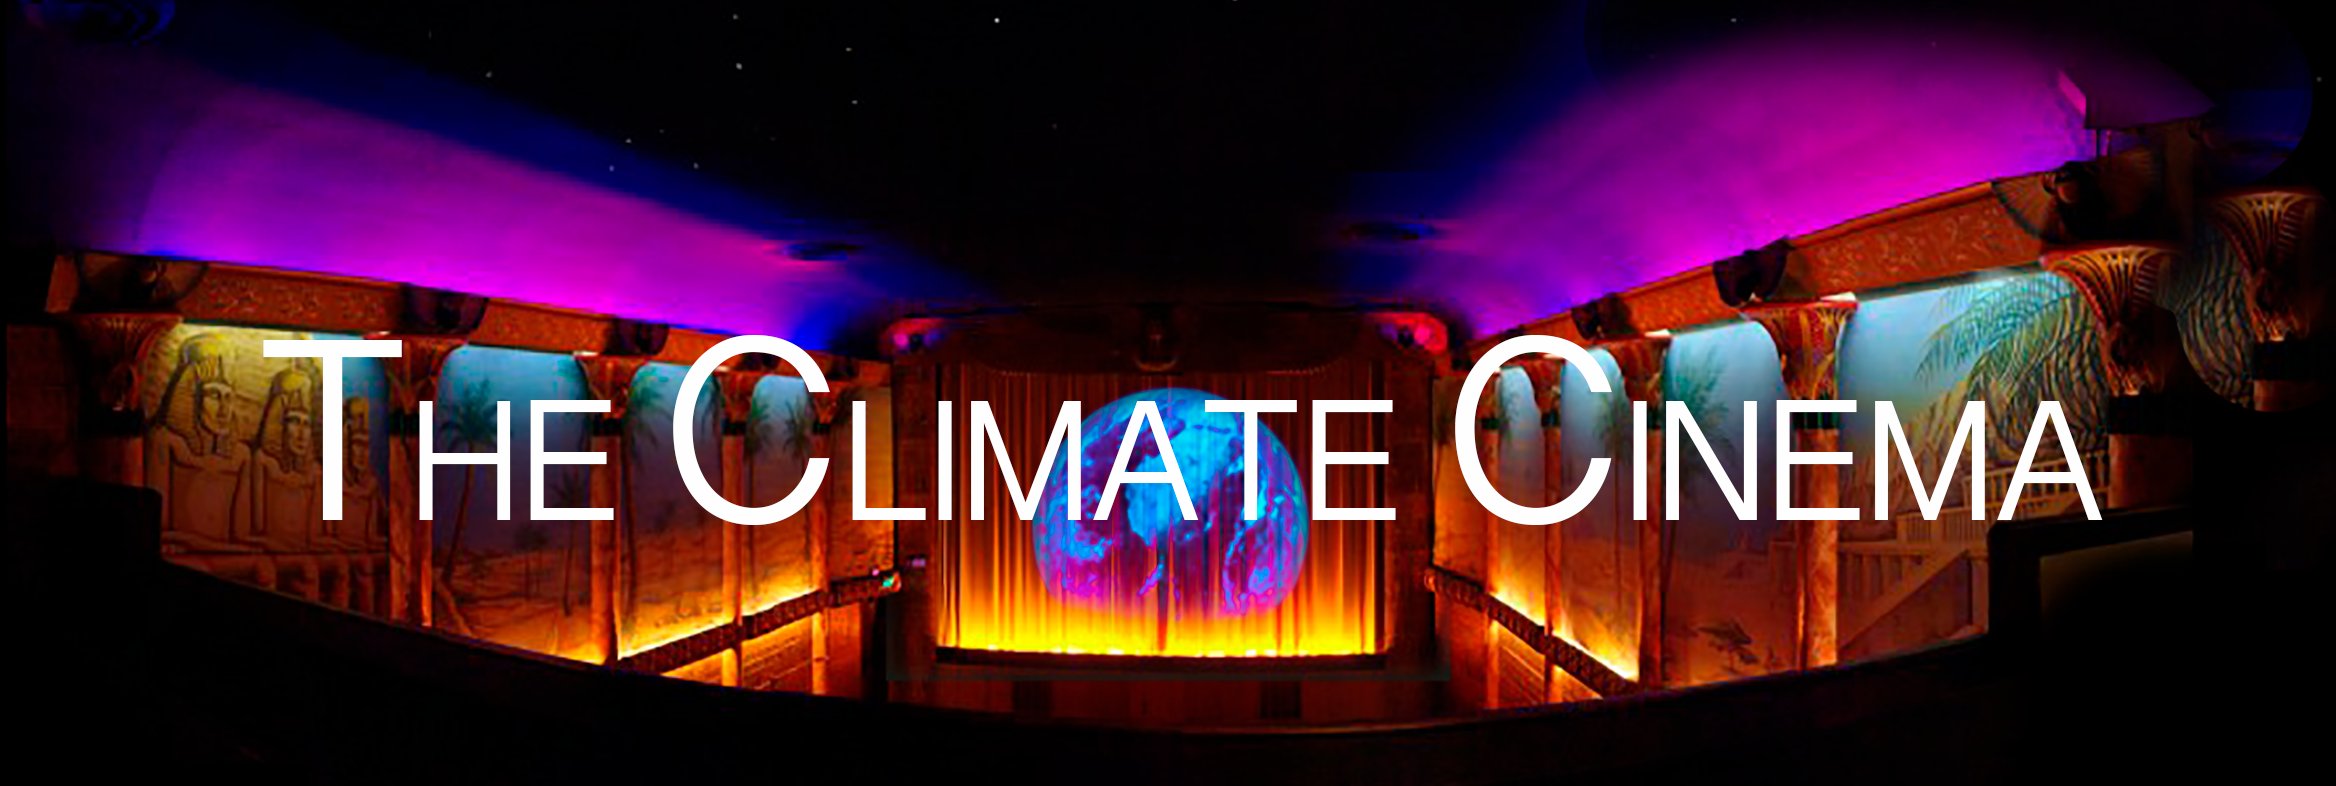 THE CLIMATE CINEMA